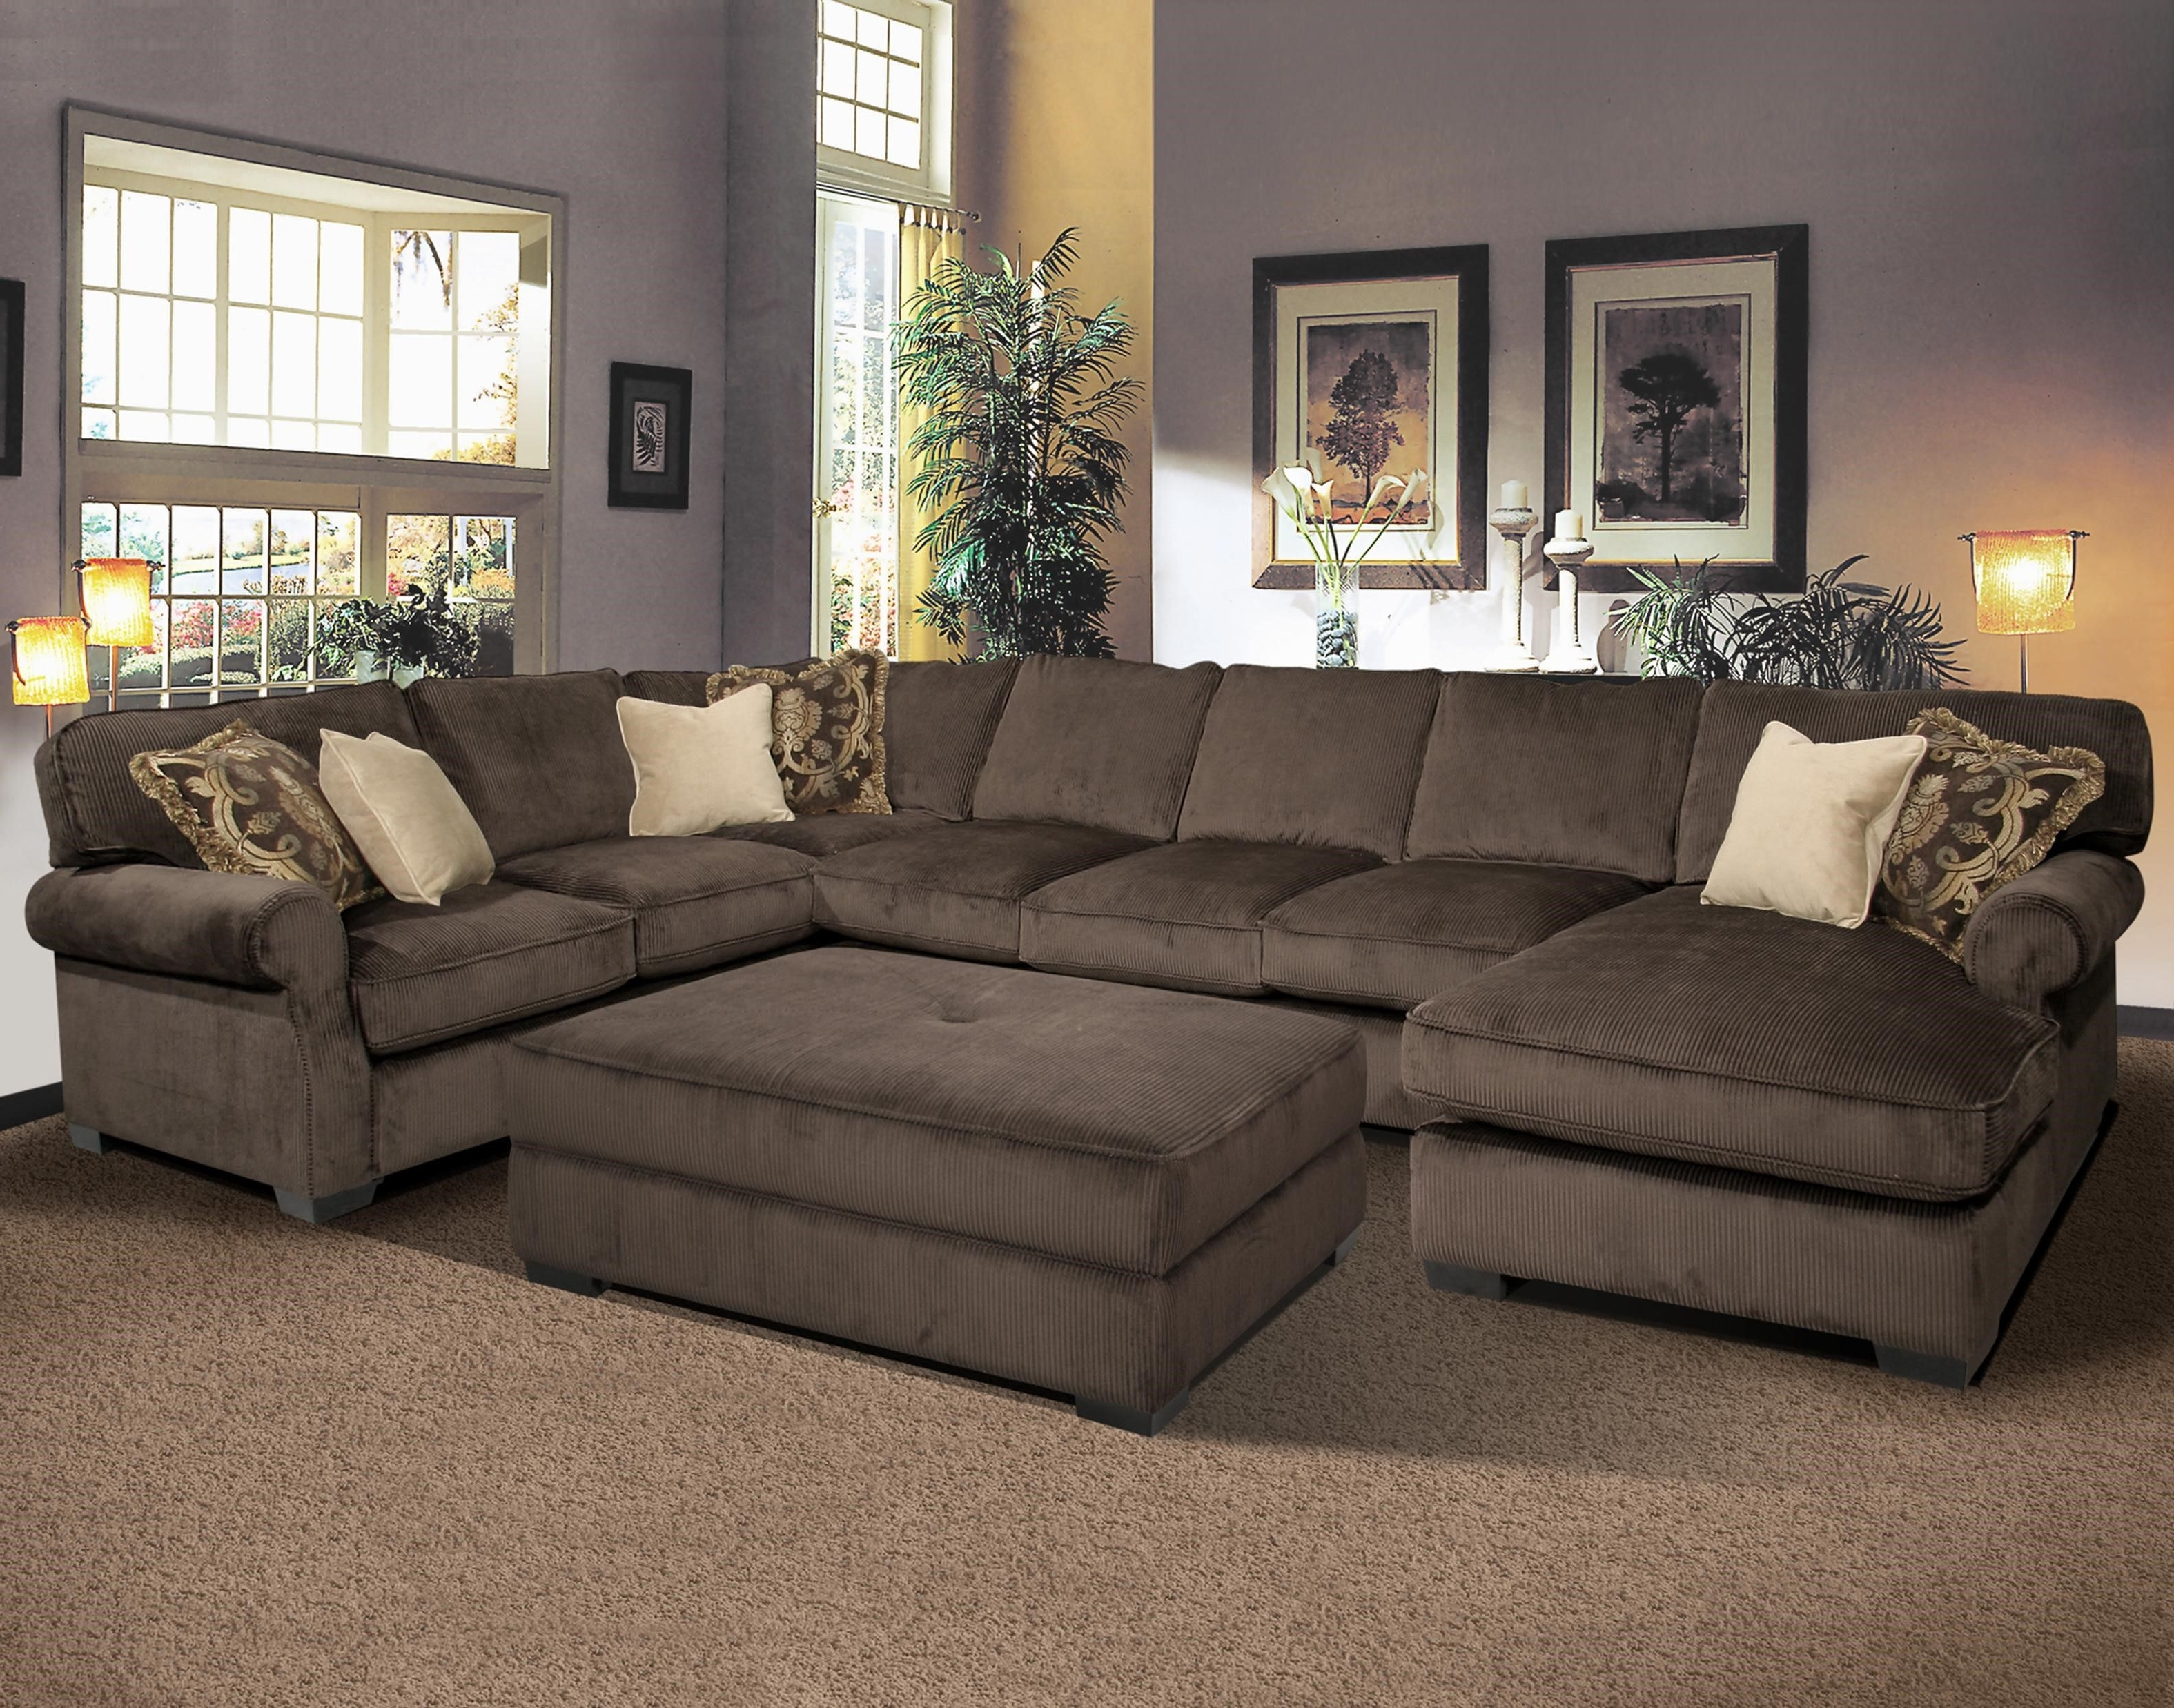 Most Current Comfortable Living Room Sofas Design With Elegant Overstuffed Throughout Down Sectional Sofas (View 7 of 15)